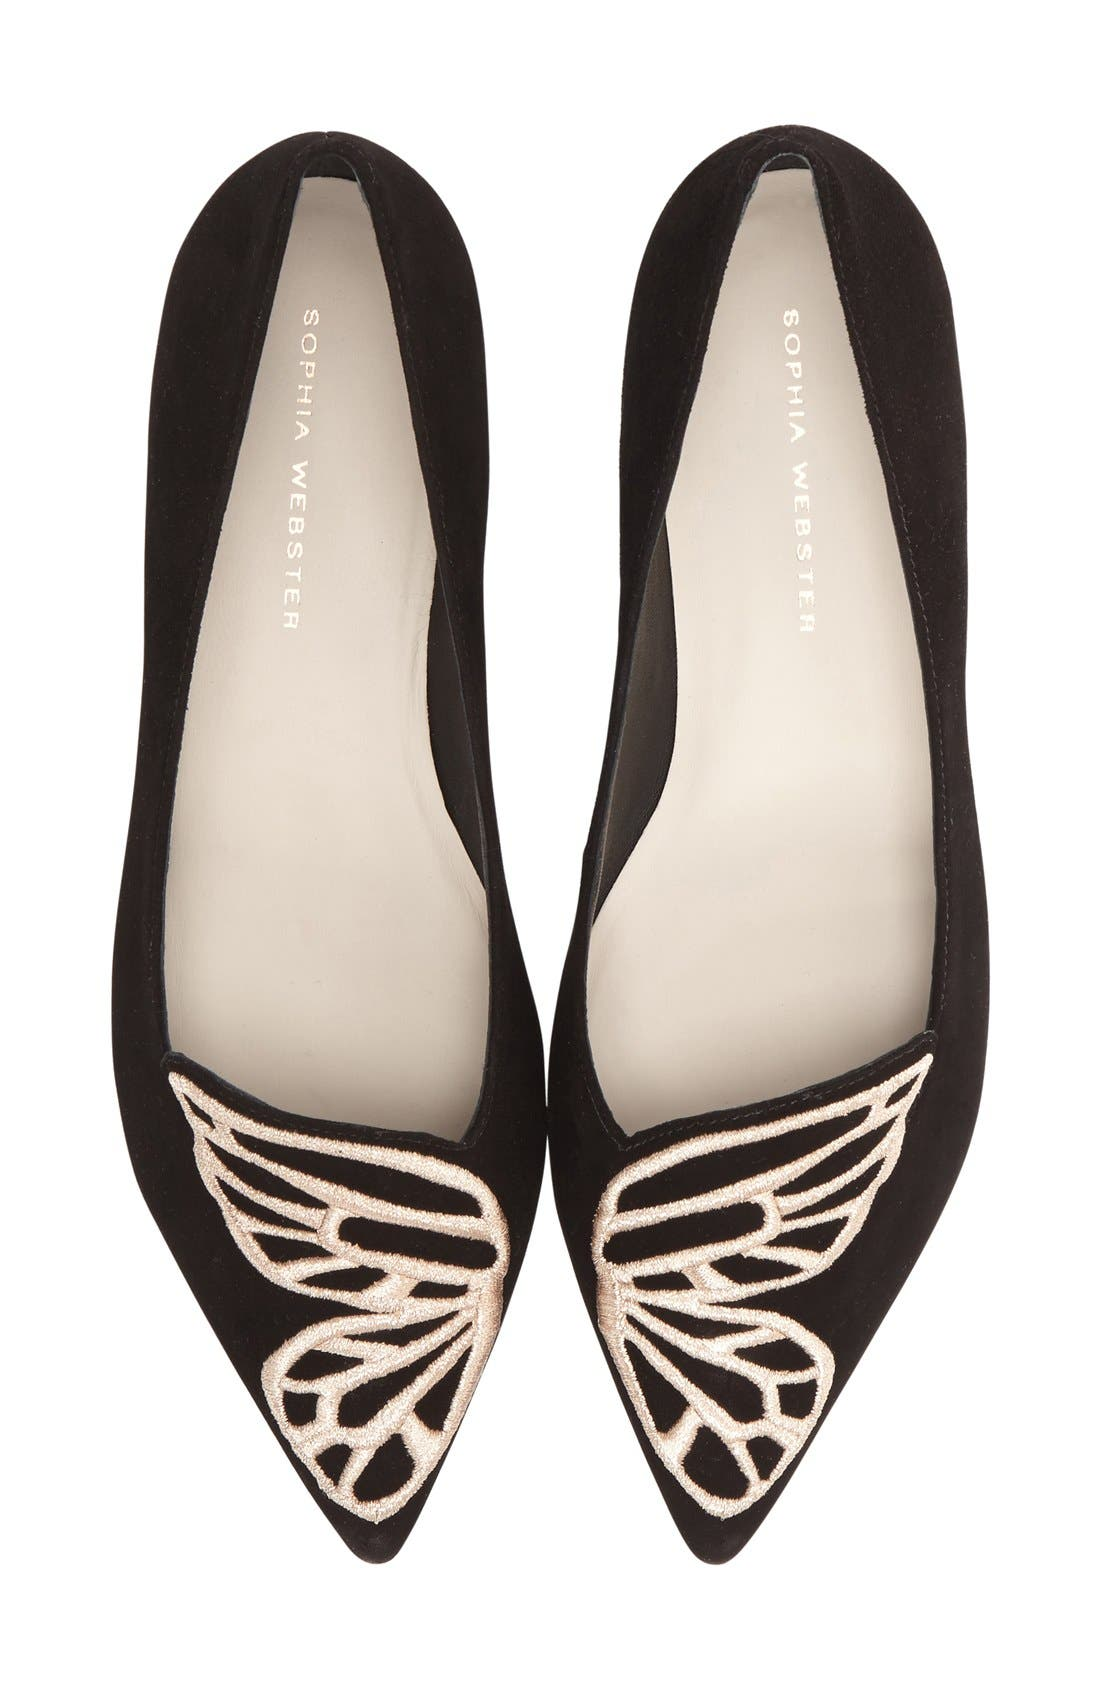 Alternate Image 1 Selected - Sophia Webster 'Bibi Butterfly' Pointy Toe Flat (Women)